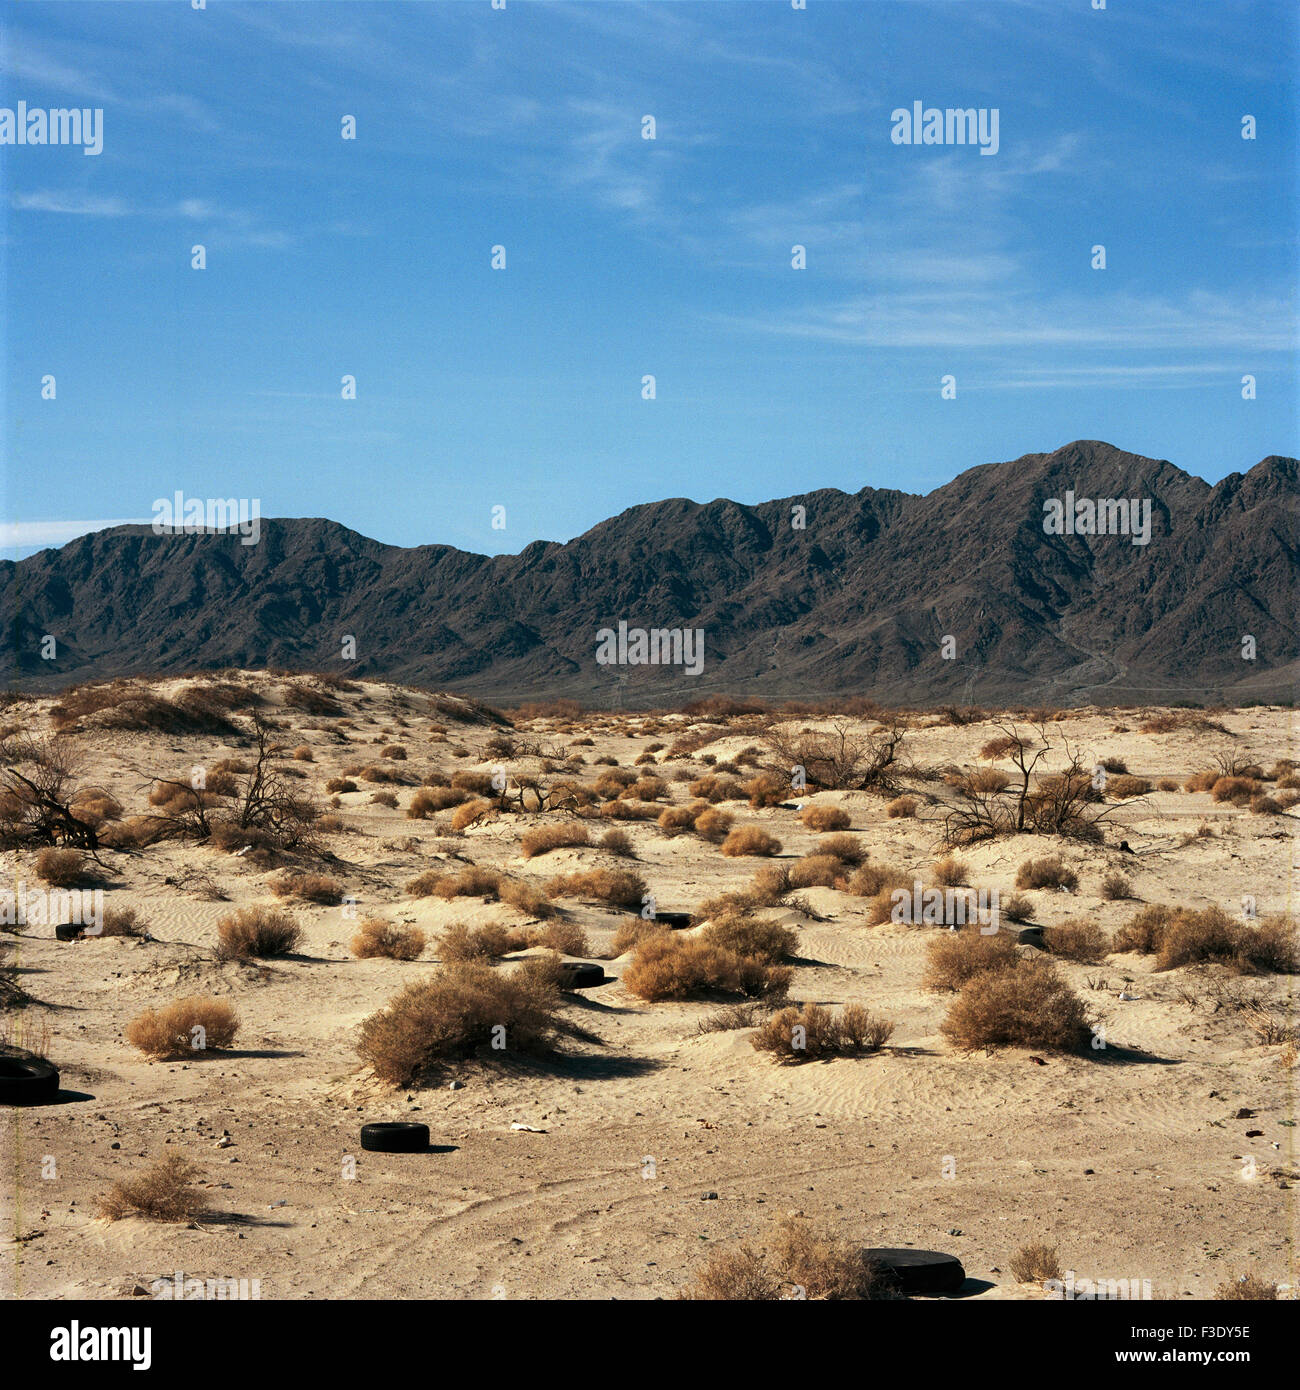 Desert littered with tires - Stock Image